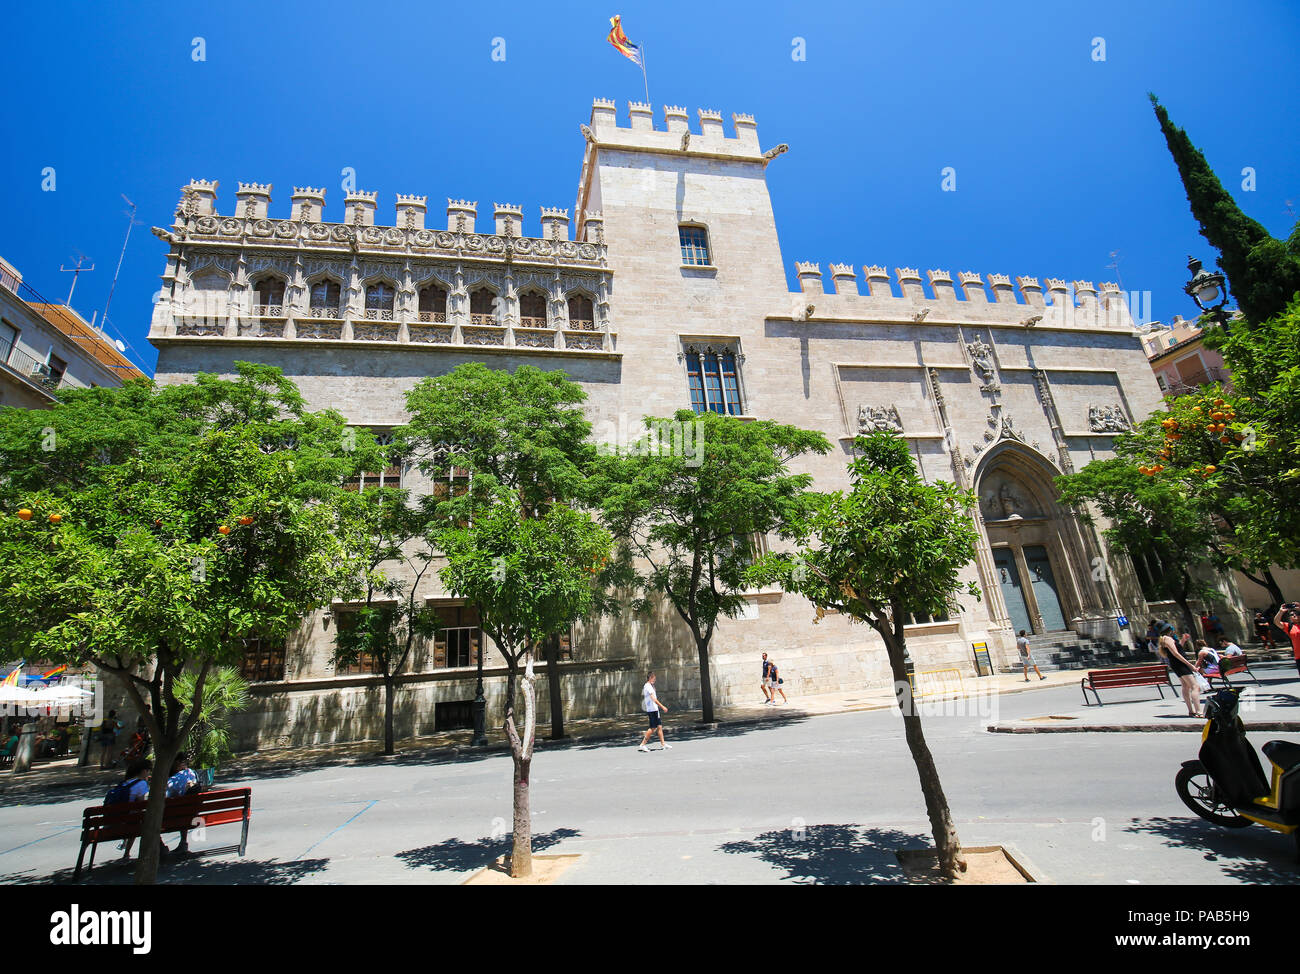 Llotja de la Seda or Silk Exchange, an emblematic late Valencian Gothic-style civil building in the center of Valencia, Spain Stock Photo